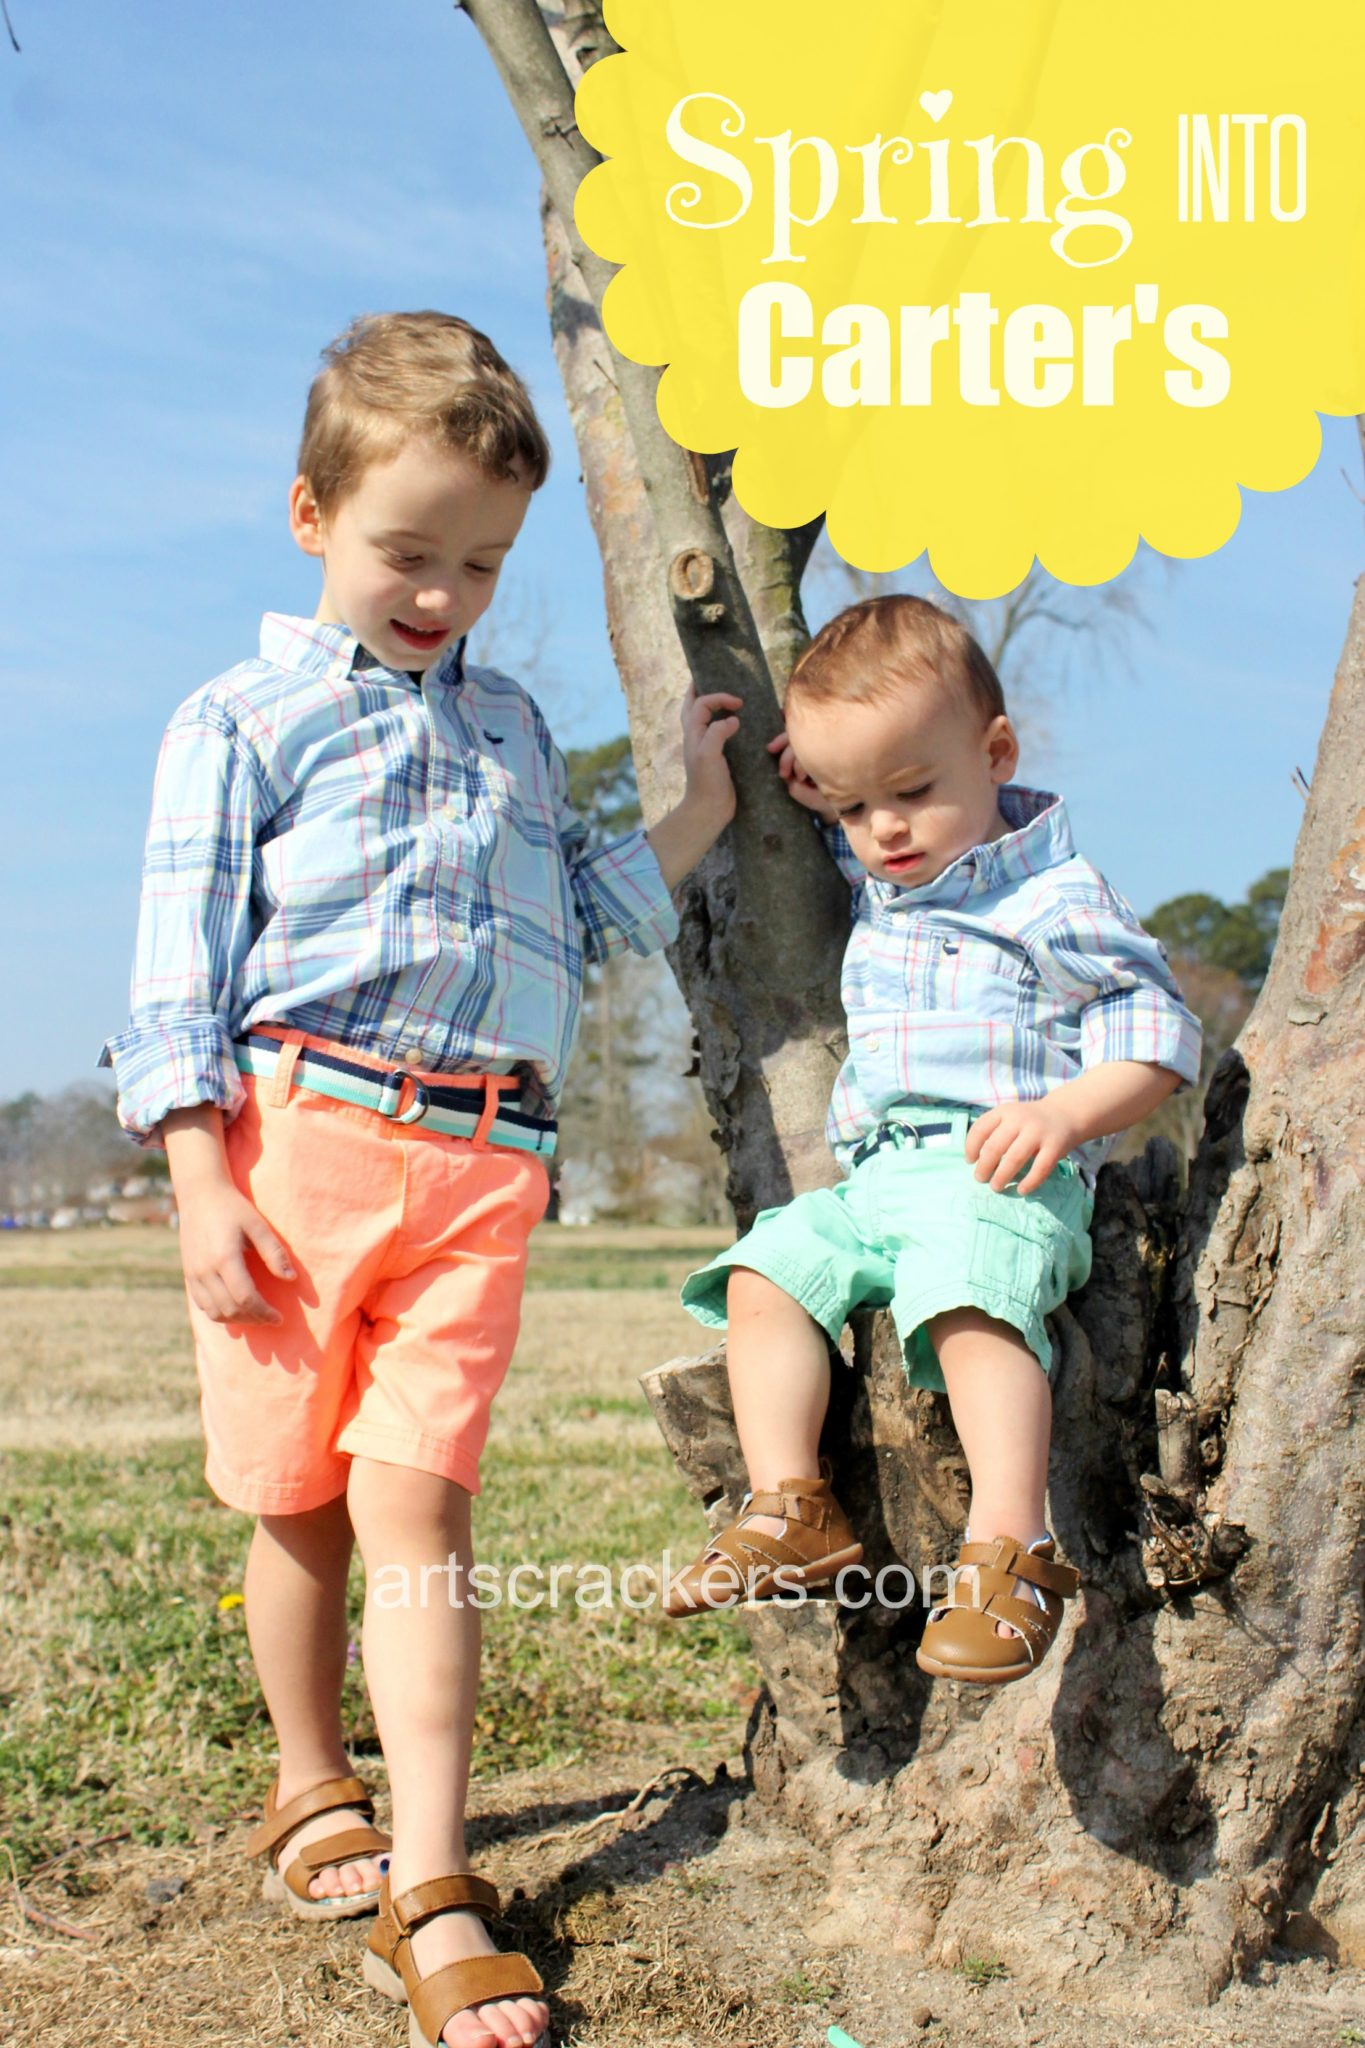 Spring Into Carters with a new wardrobe. Easter styles and more for boys and girls. Click the picture to learn more and print a coupon.